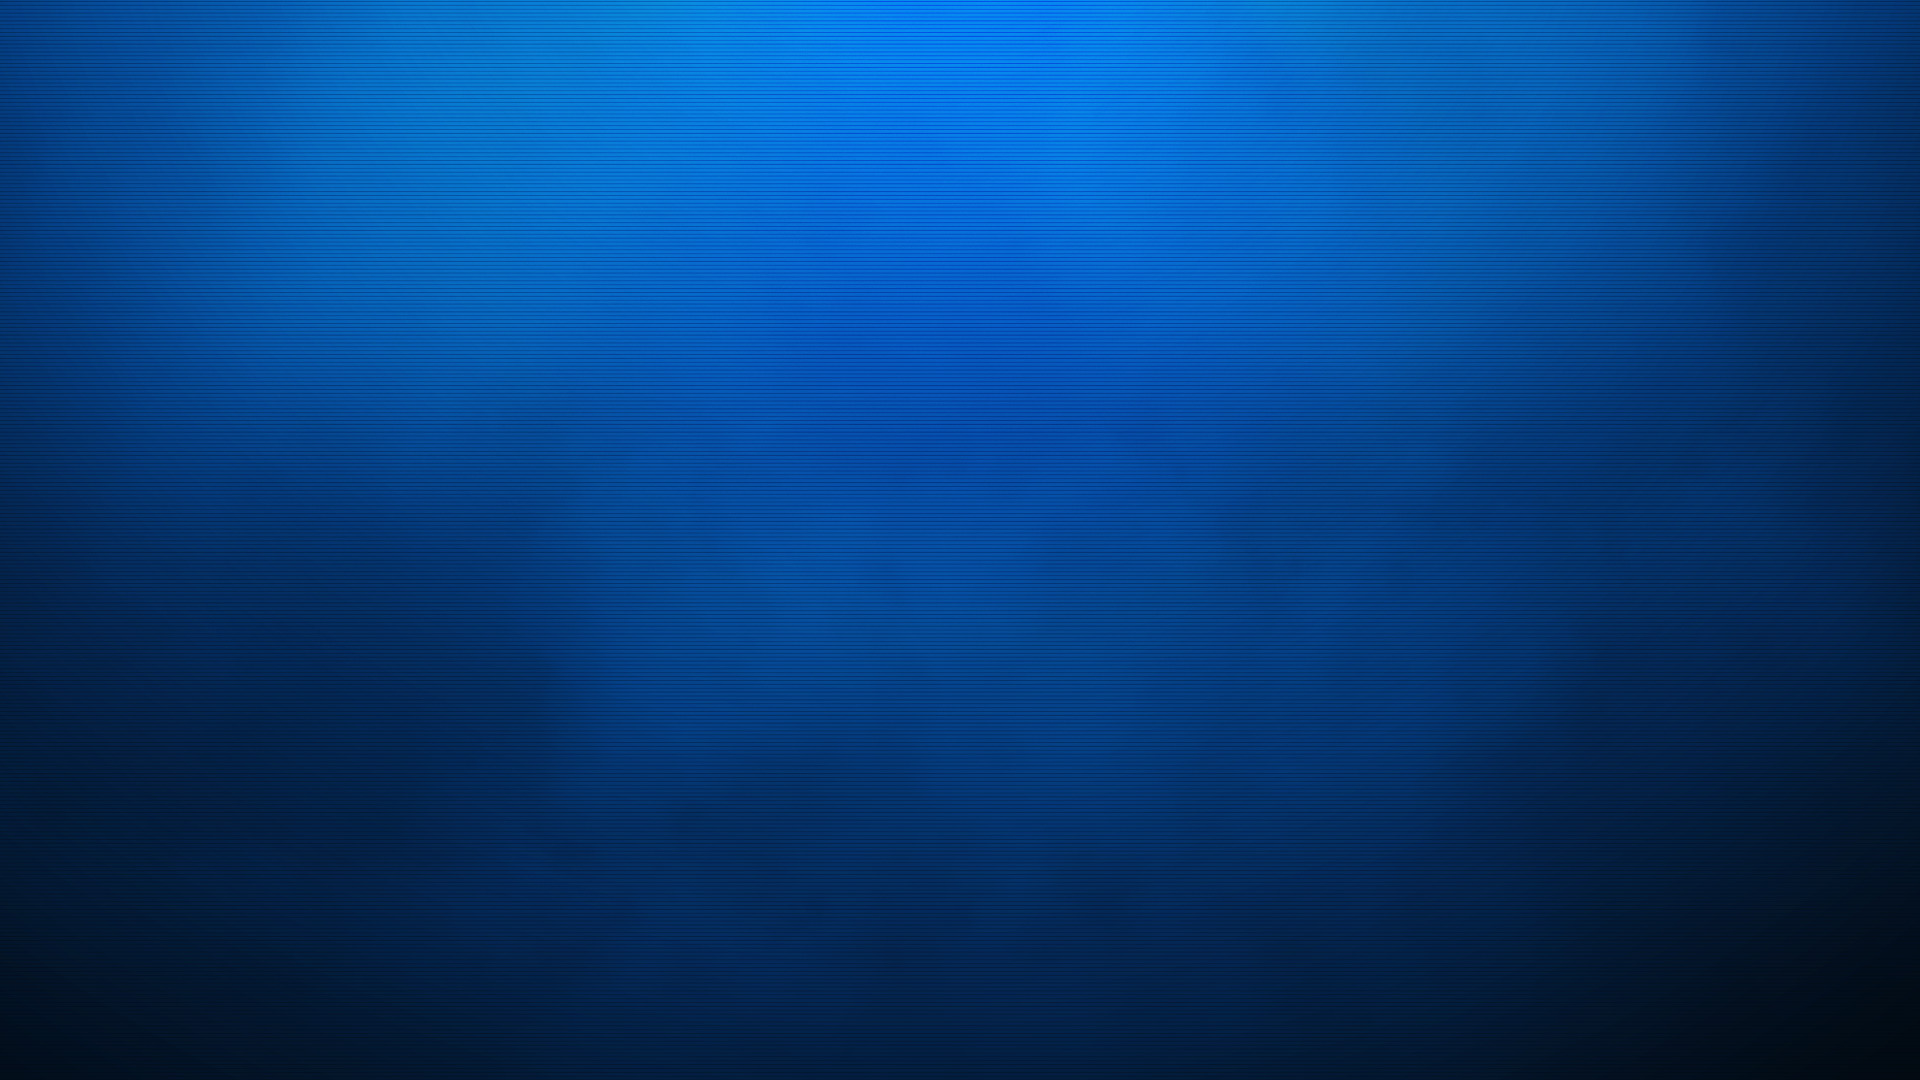 fondo azul degradado